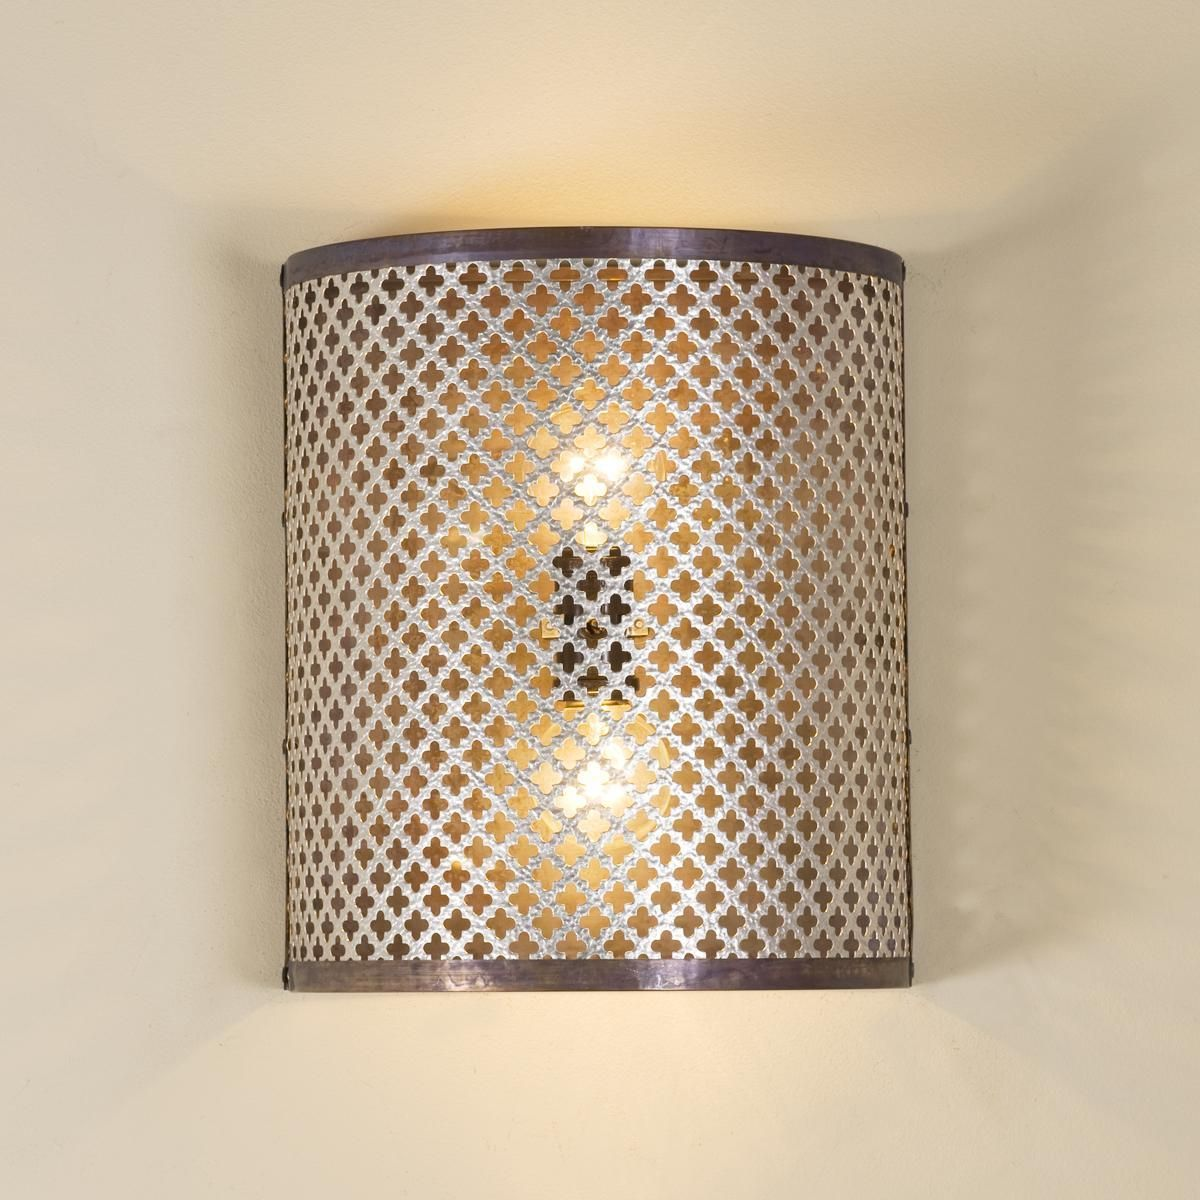 Quatrefoil Cutout Wall Sconce Wall Sconce Shade Unique Wall